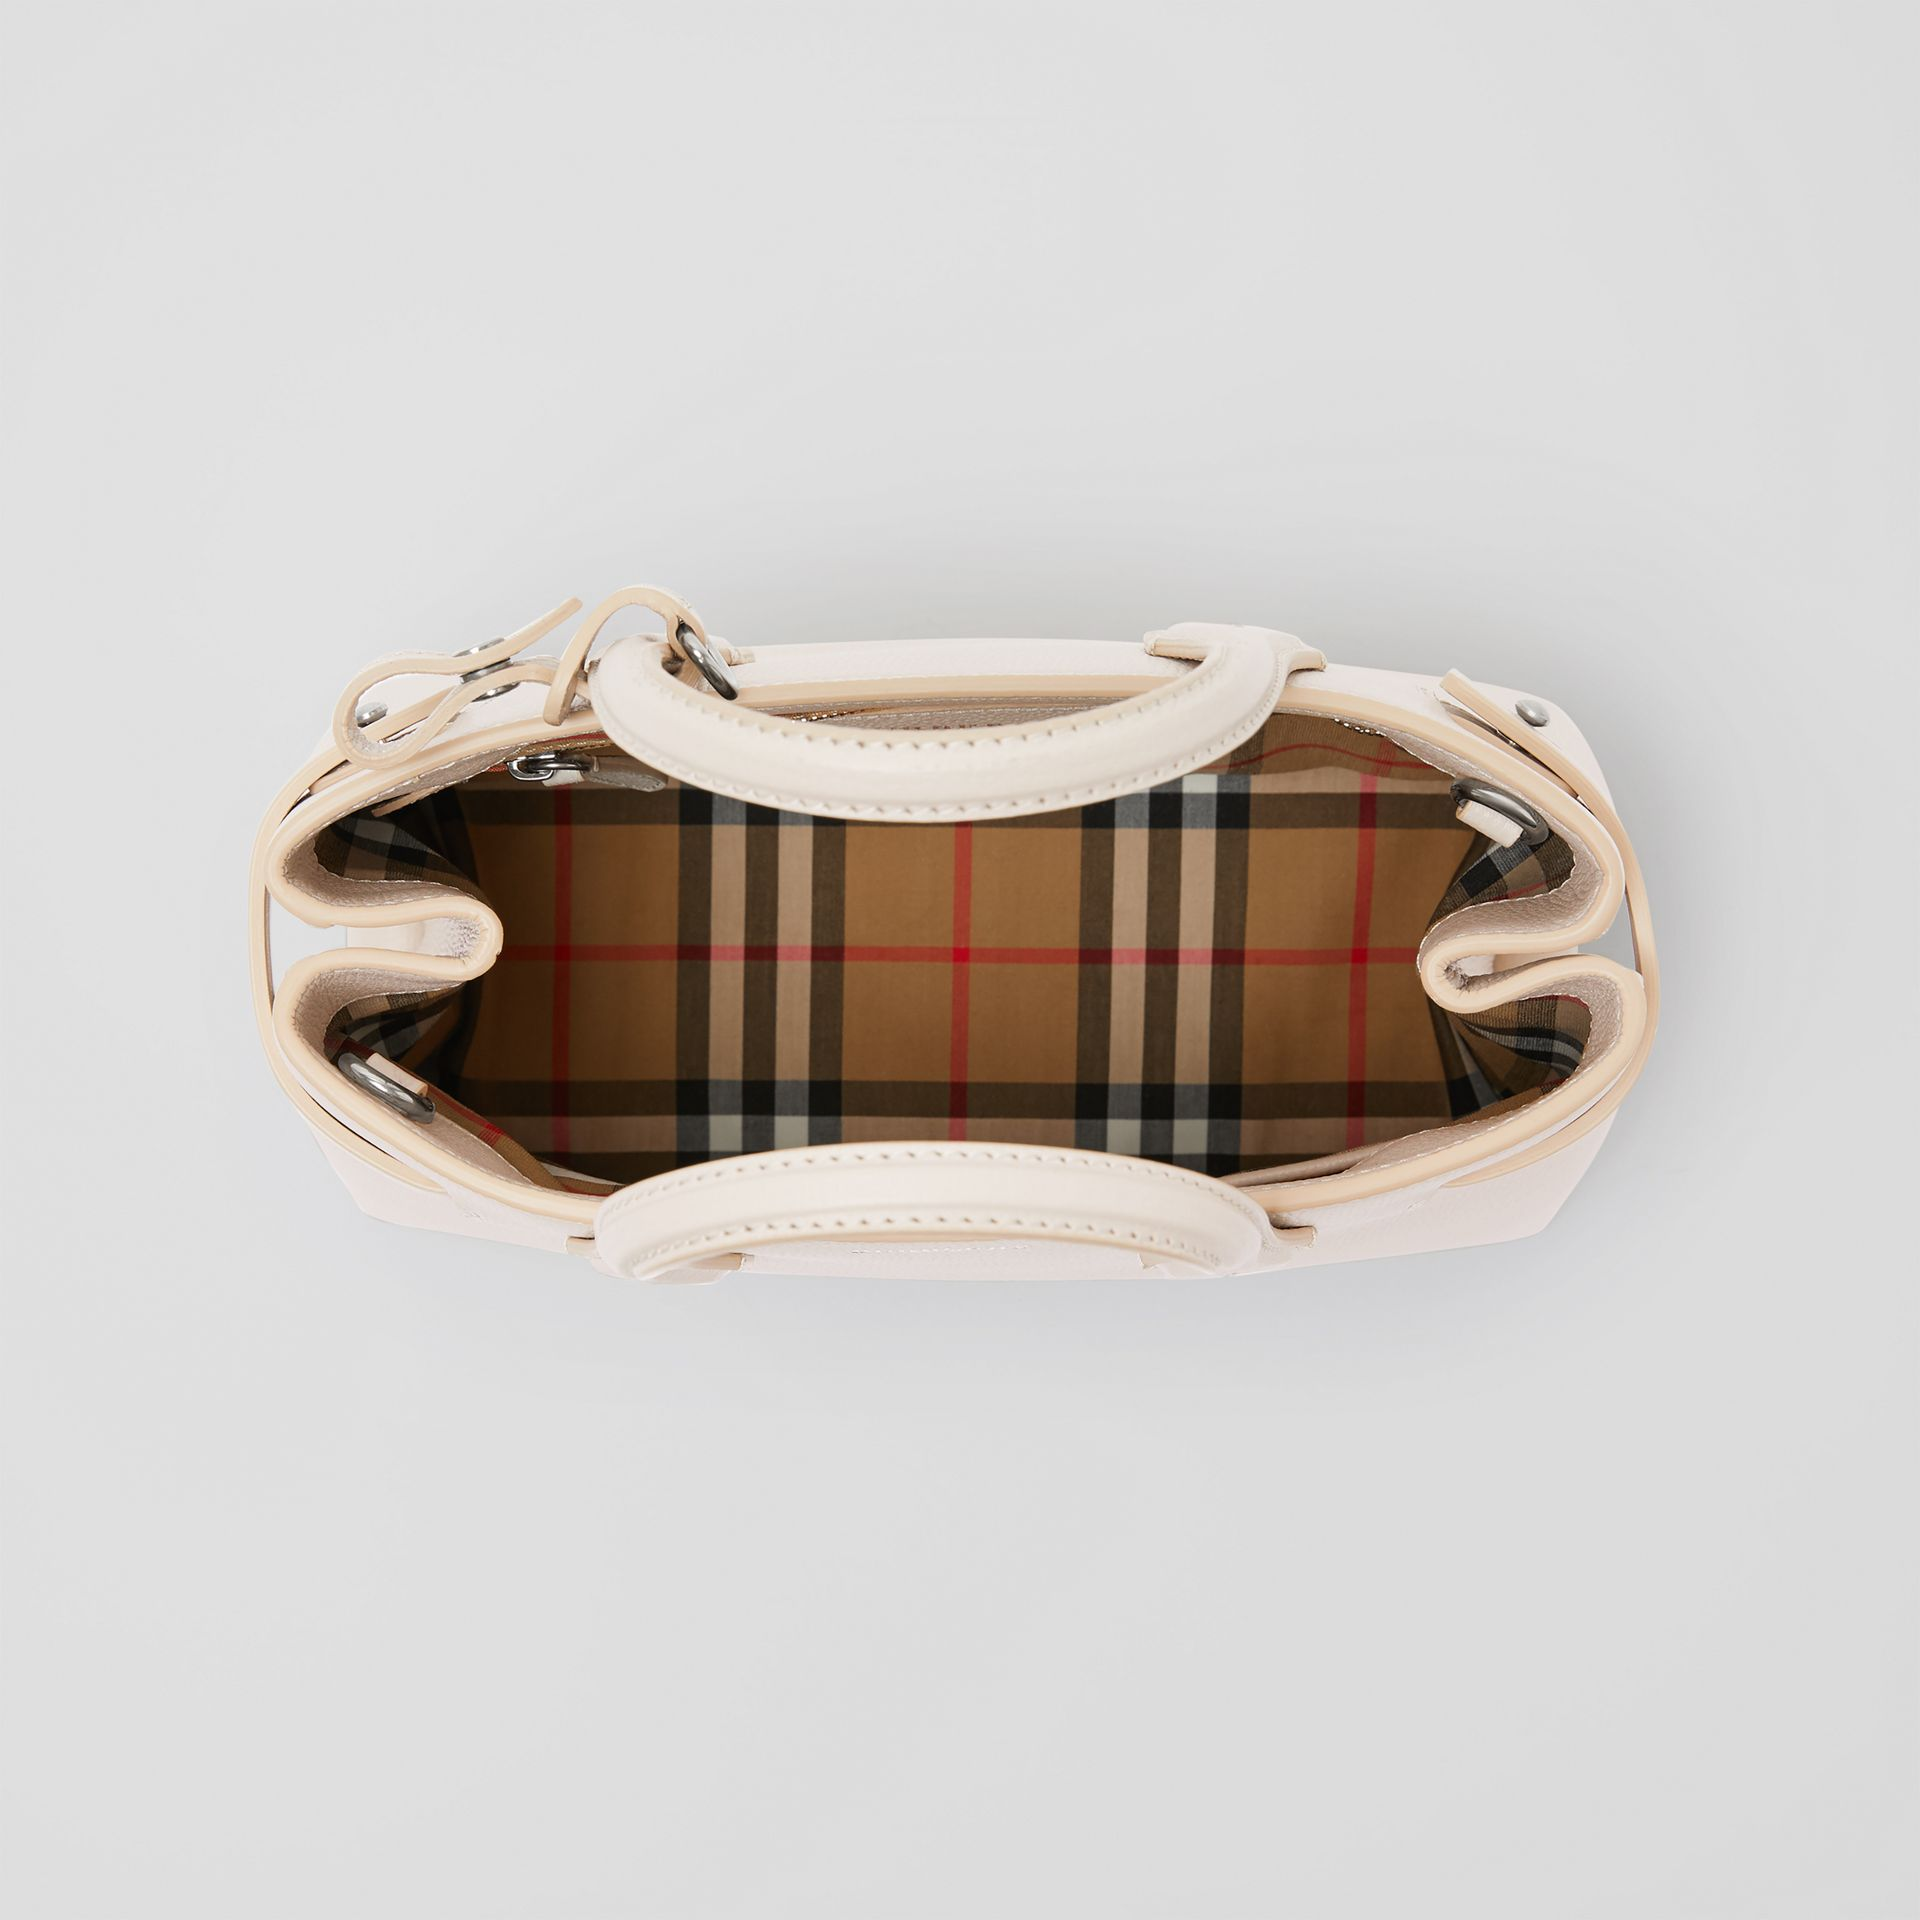 Petit sac The Banner en cuir avec motif Vintage check (Calcaire) - Femme | Burberry - photo de la galerie 5